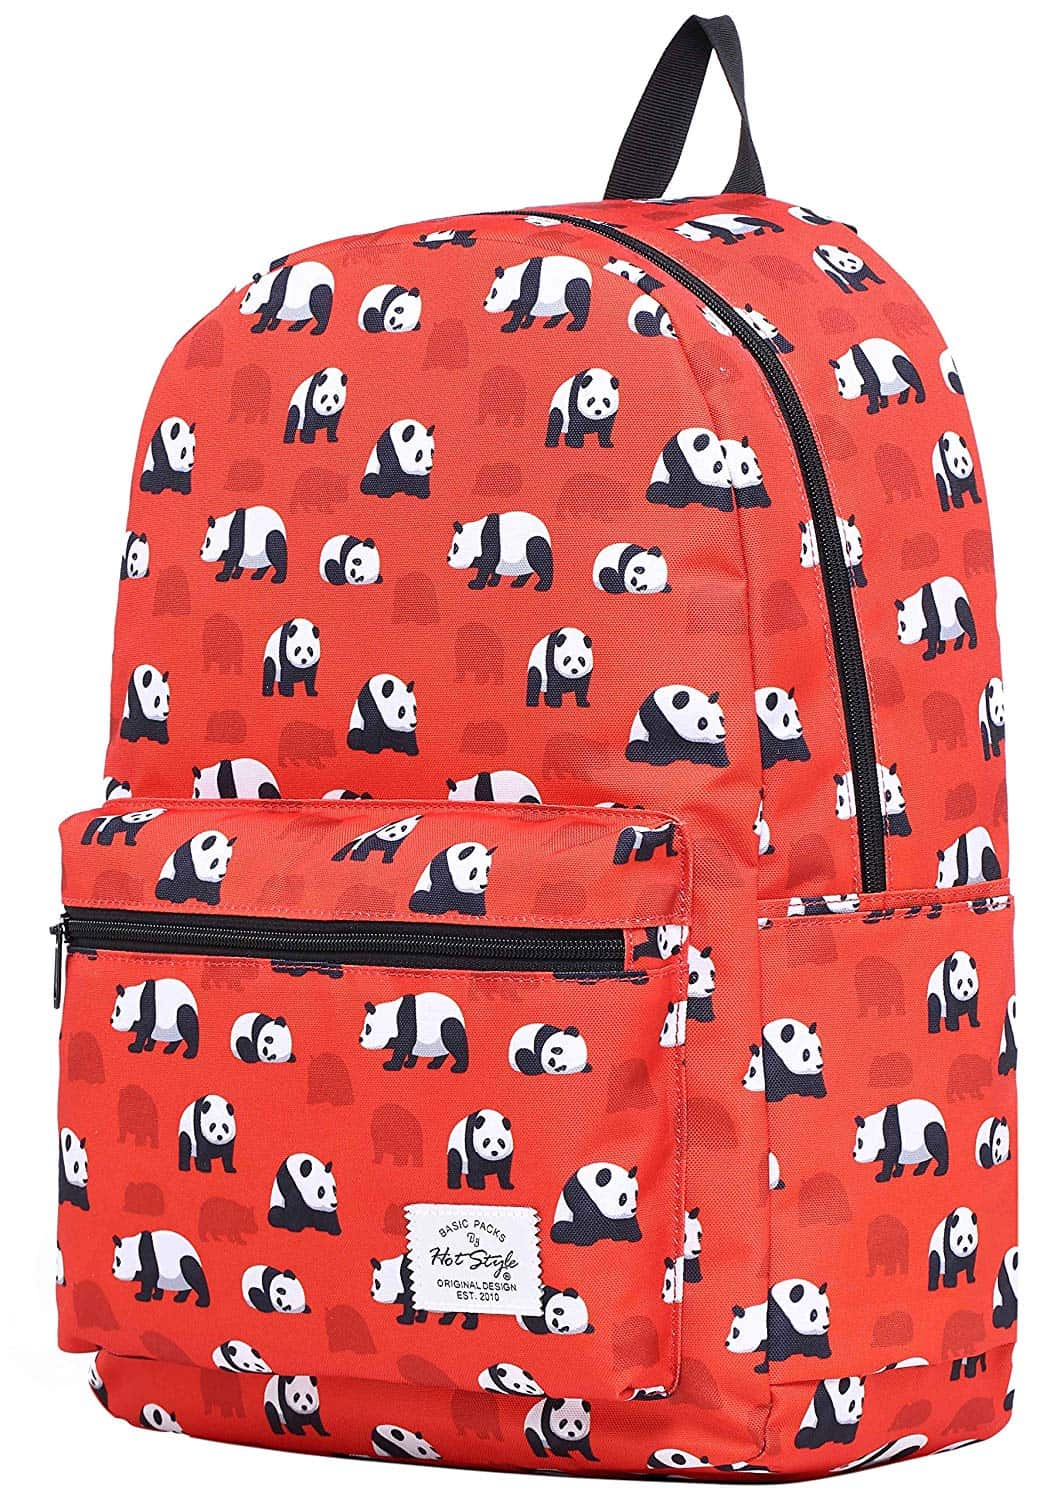 panda backpack for girls